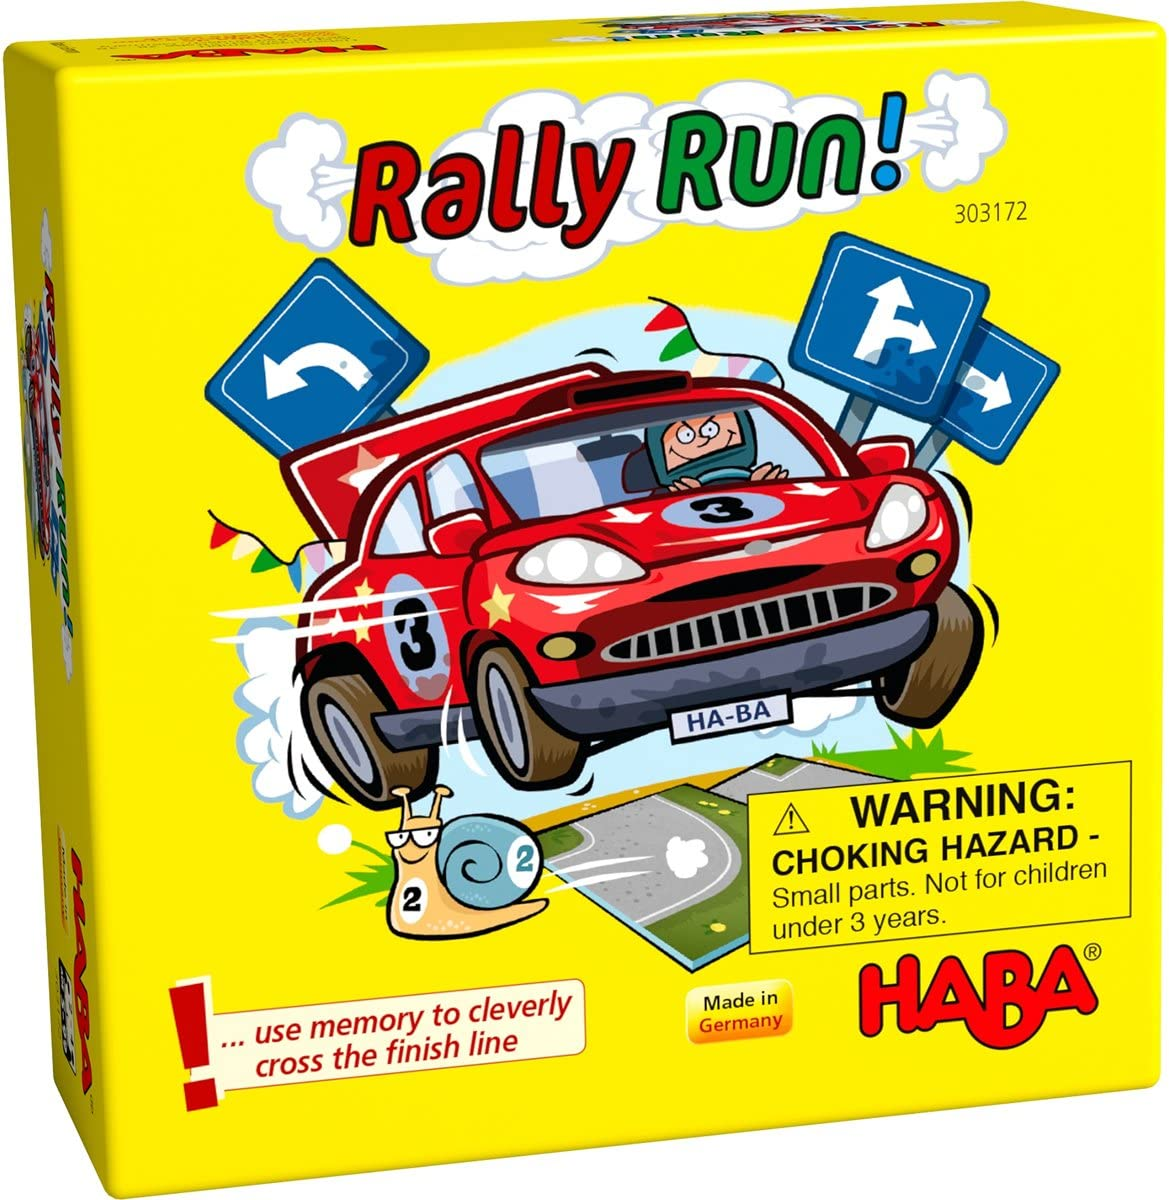 HABA RALLY RUN  - A TRICKY MEMORY MATCHING POCKET SIZED GAME FOR AGES 5+ (MADE IN GERMANY)